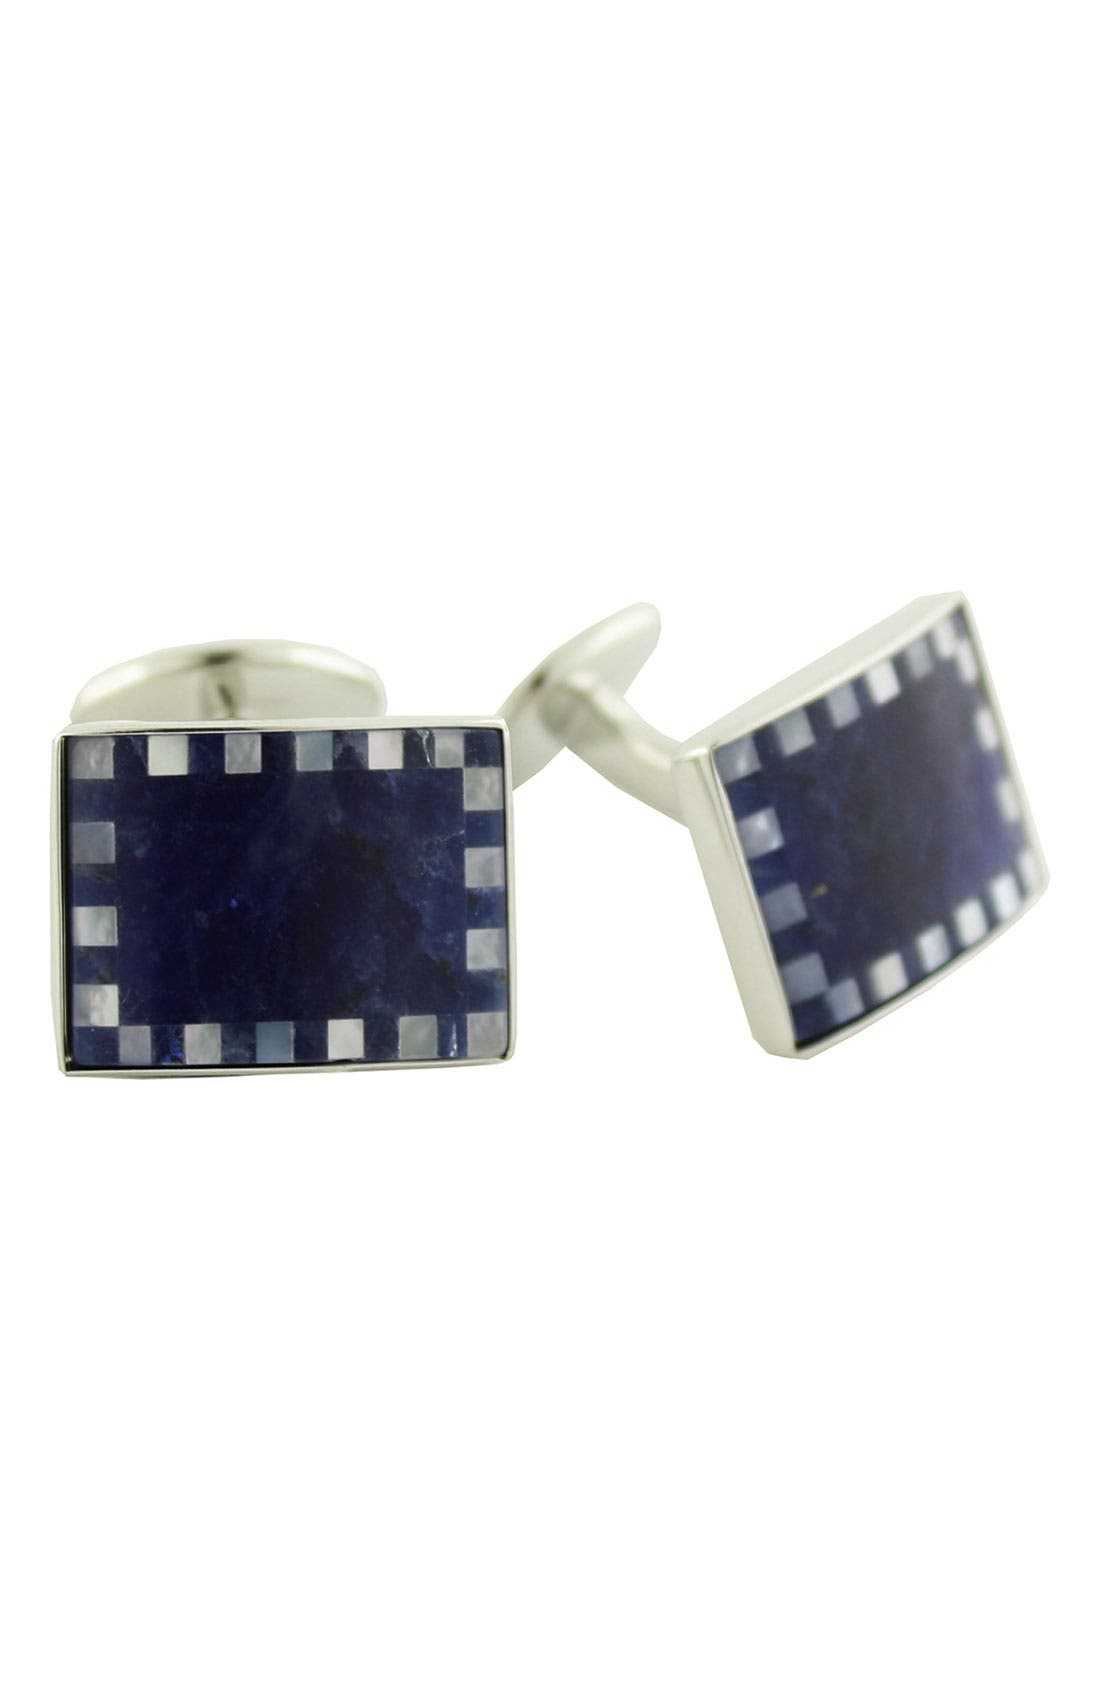 Alternate Image 1 Selected - David Donahue Sterling Silver, Sodalite & Mother-of-Pearl Cuff Links